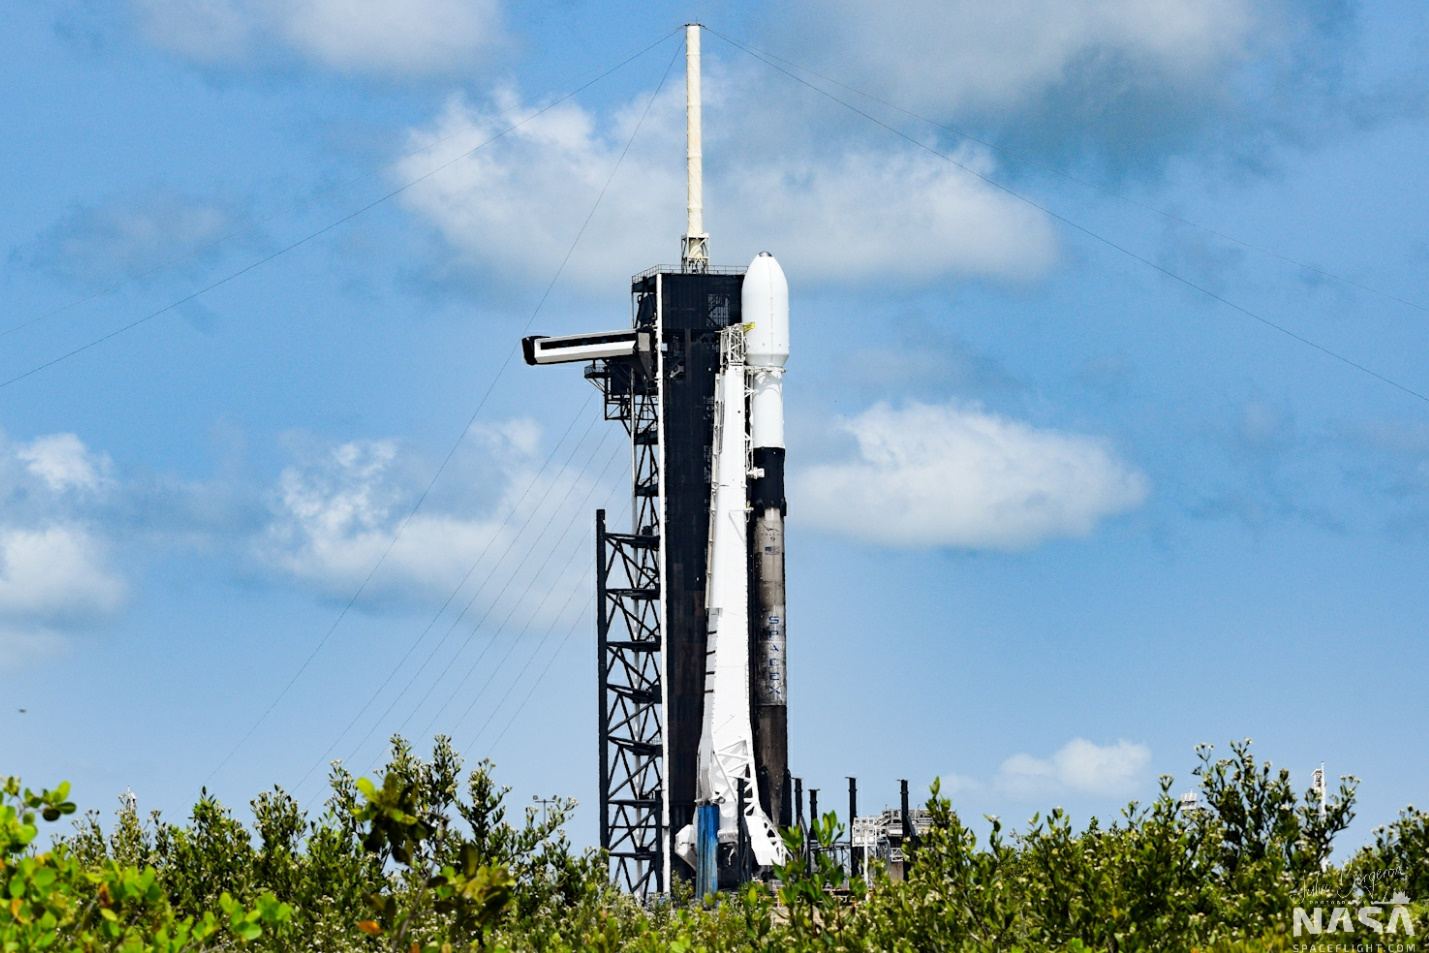 SpaceX scrubs Starlink v1.0 L9 mission - NASASpaceflight.com